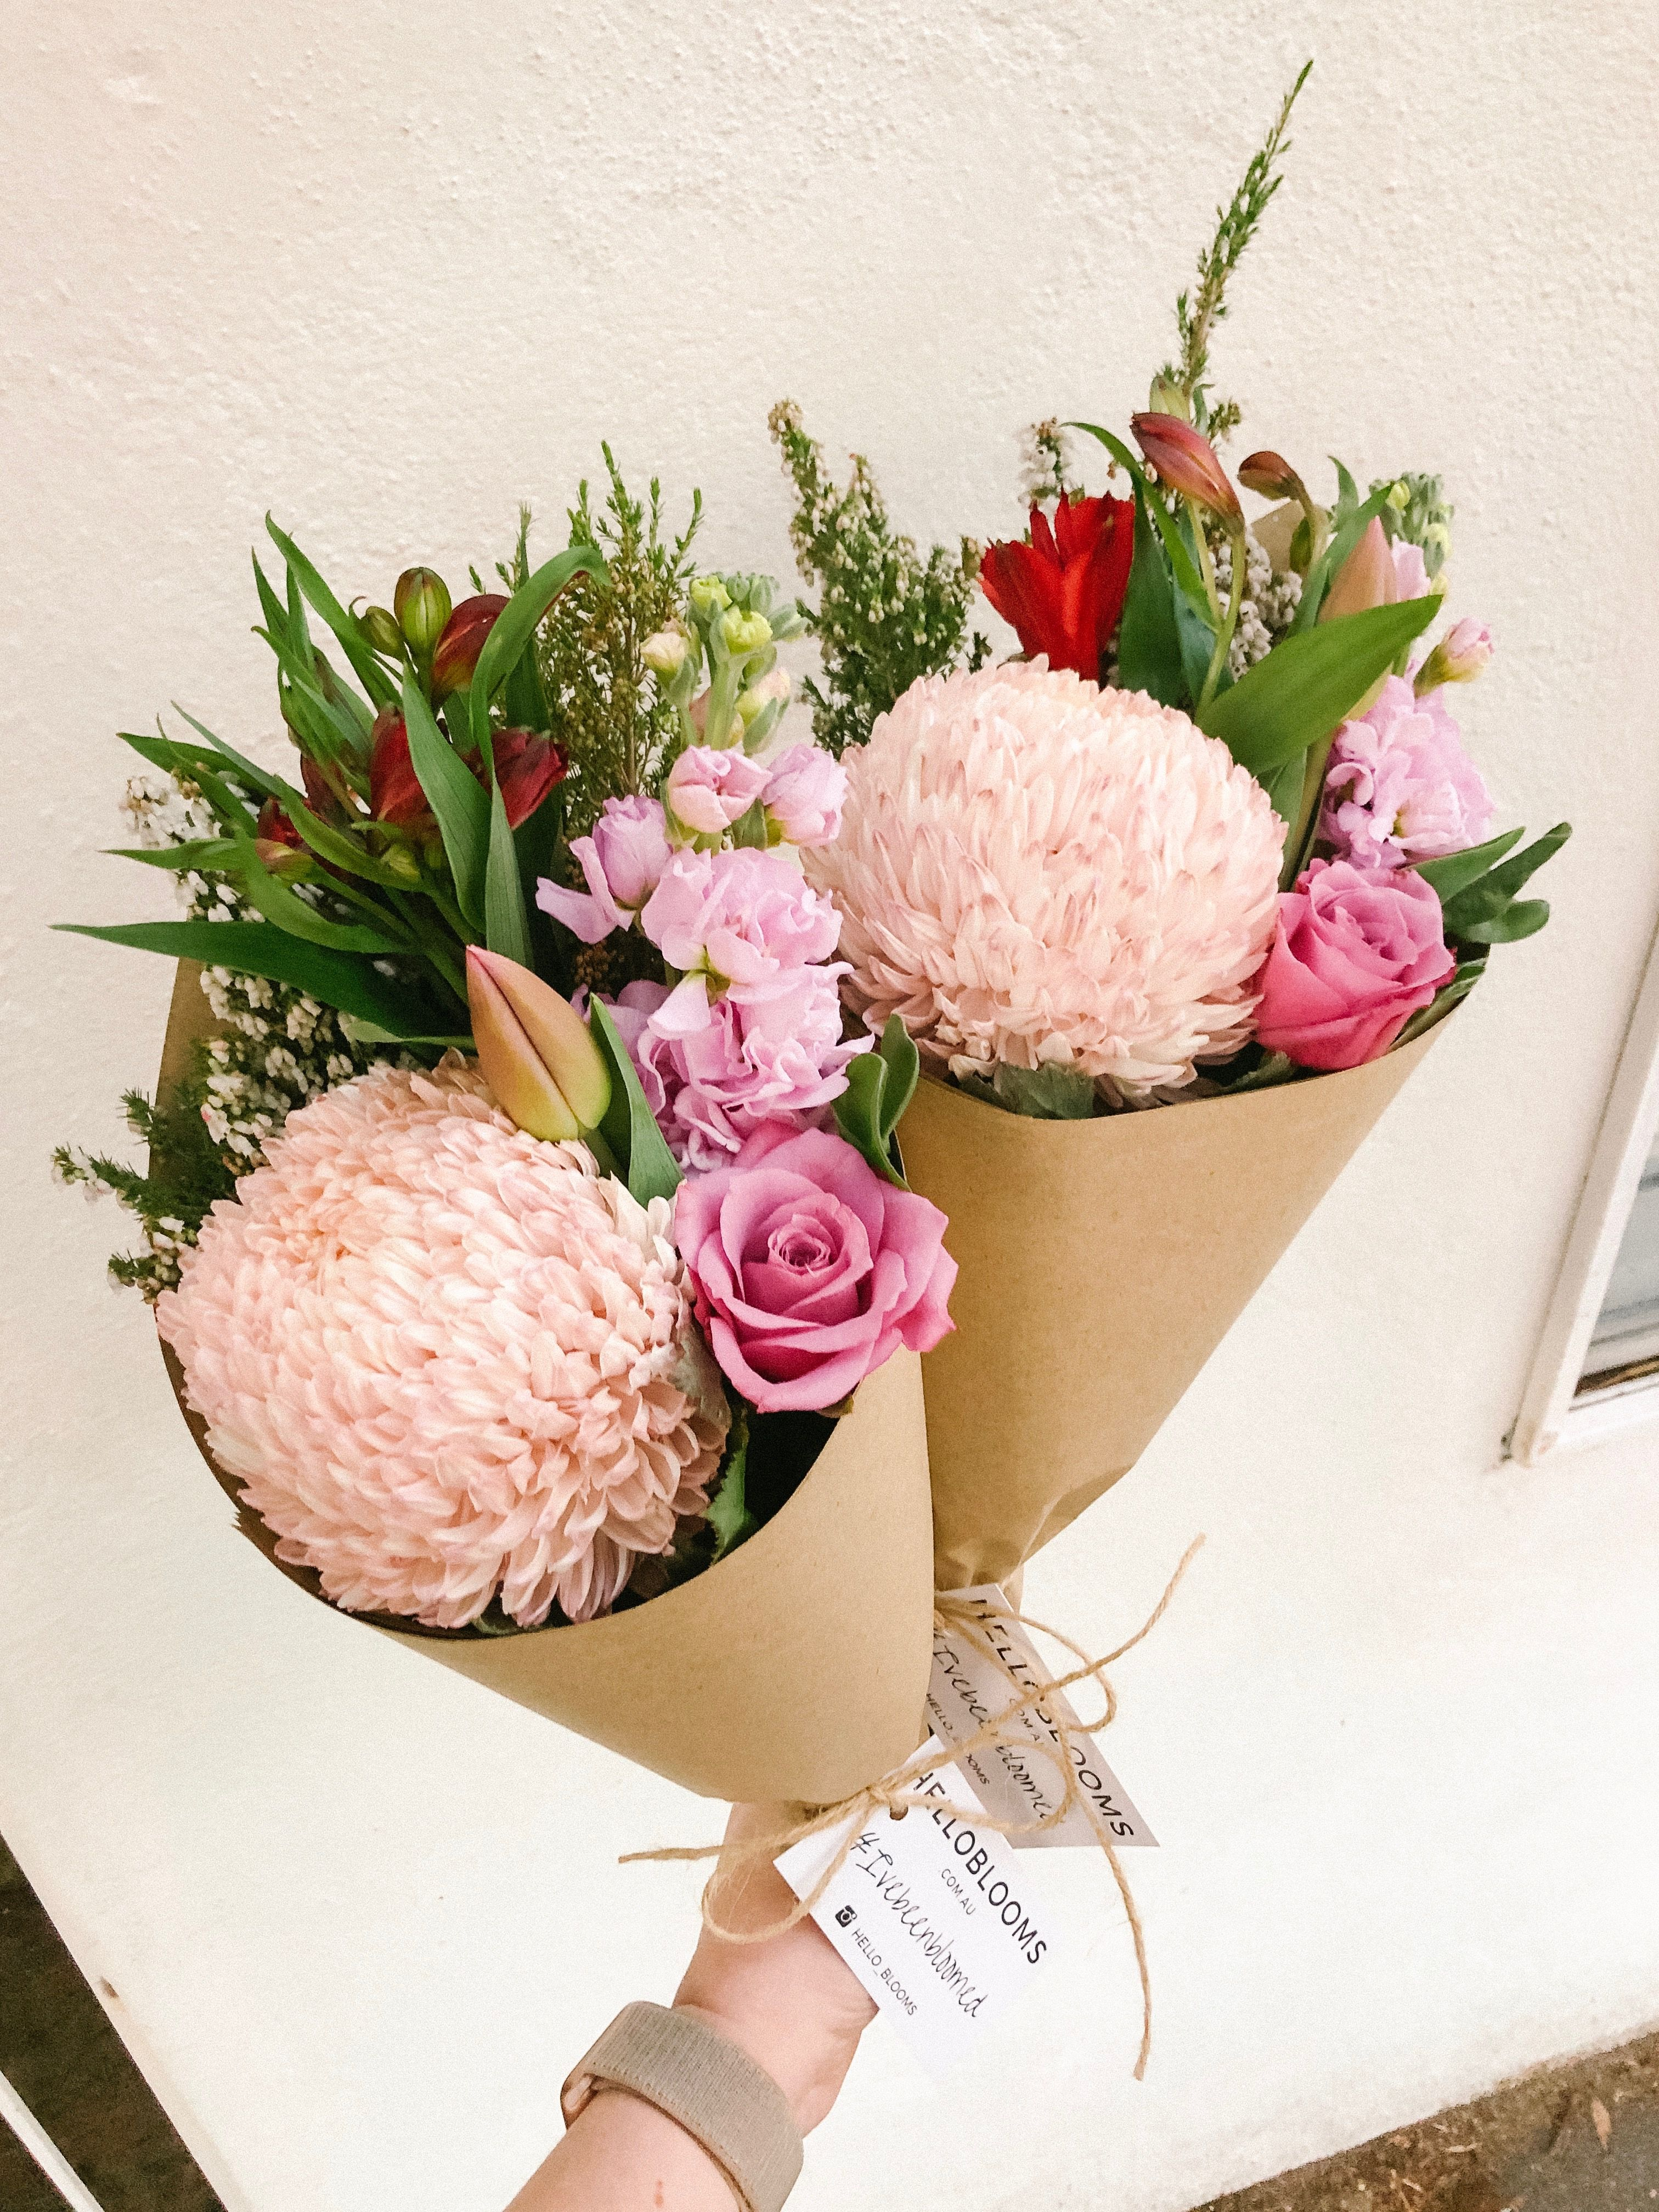 Flowers delivered daily in Melbourne. Our posy for 11 June